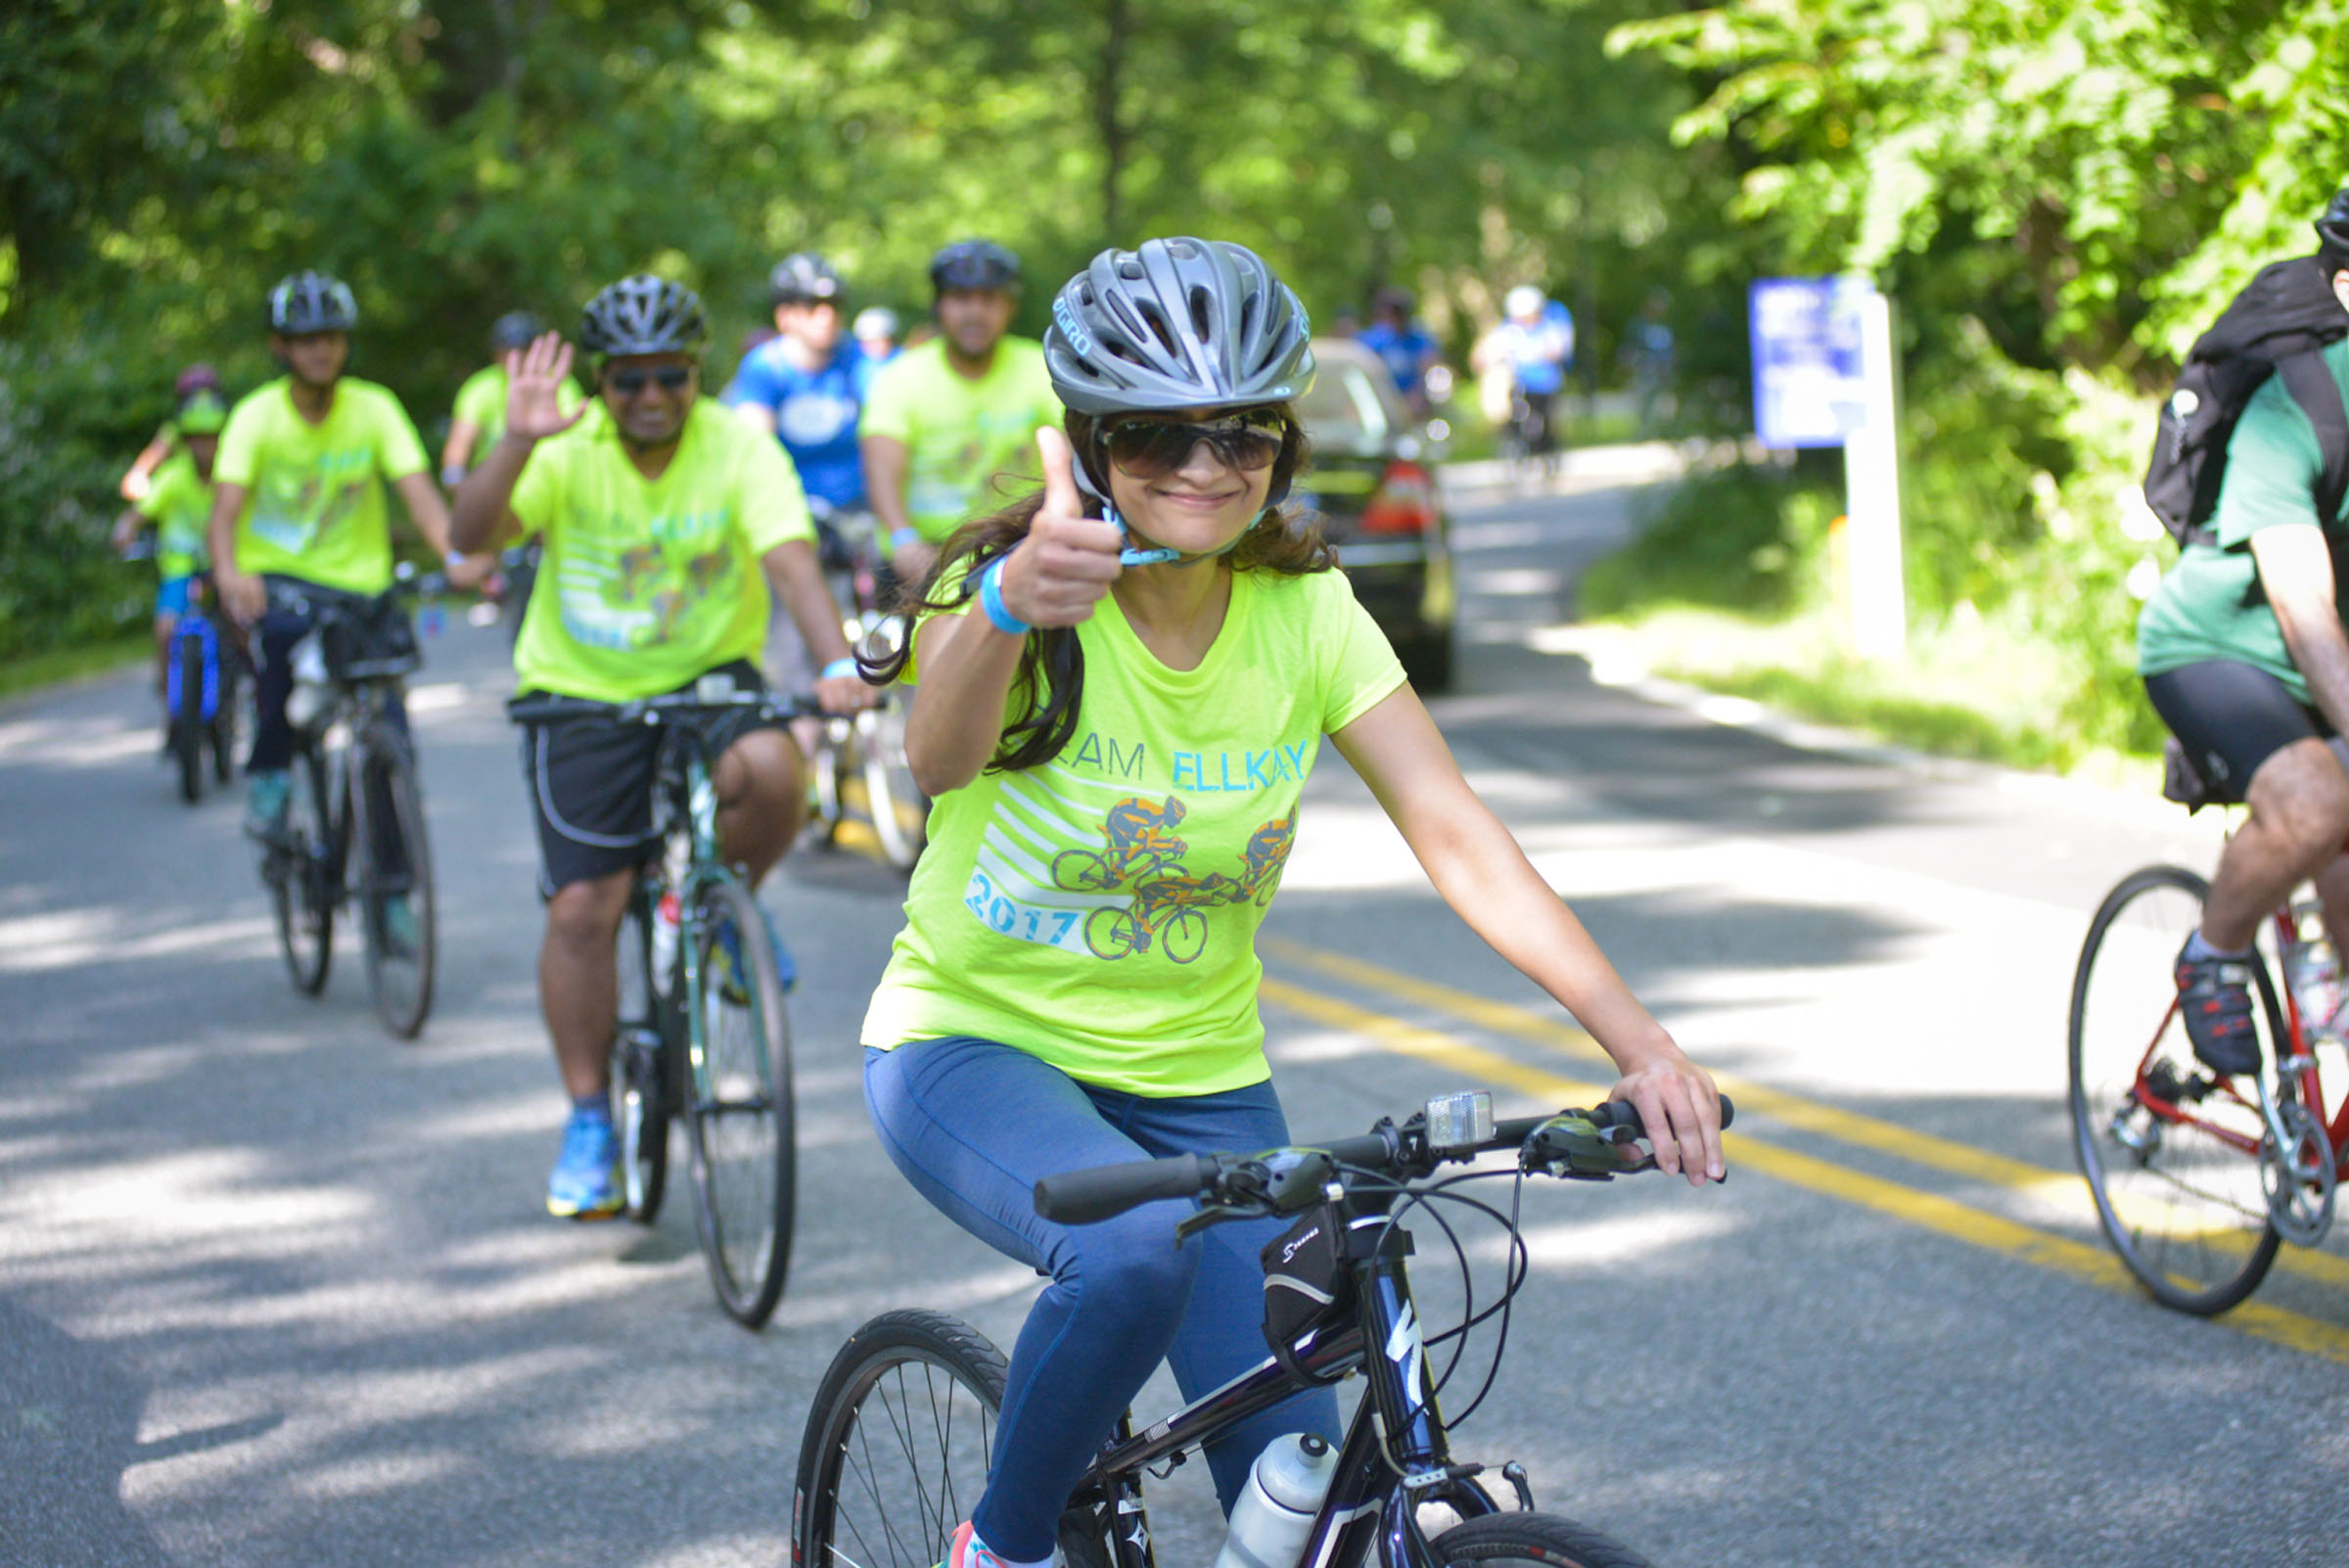 2017-06-04 GTD4A Charity Bike Ride - BCC - Paramus NJ-1957.jpg